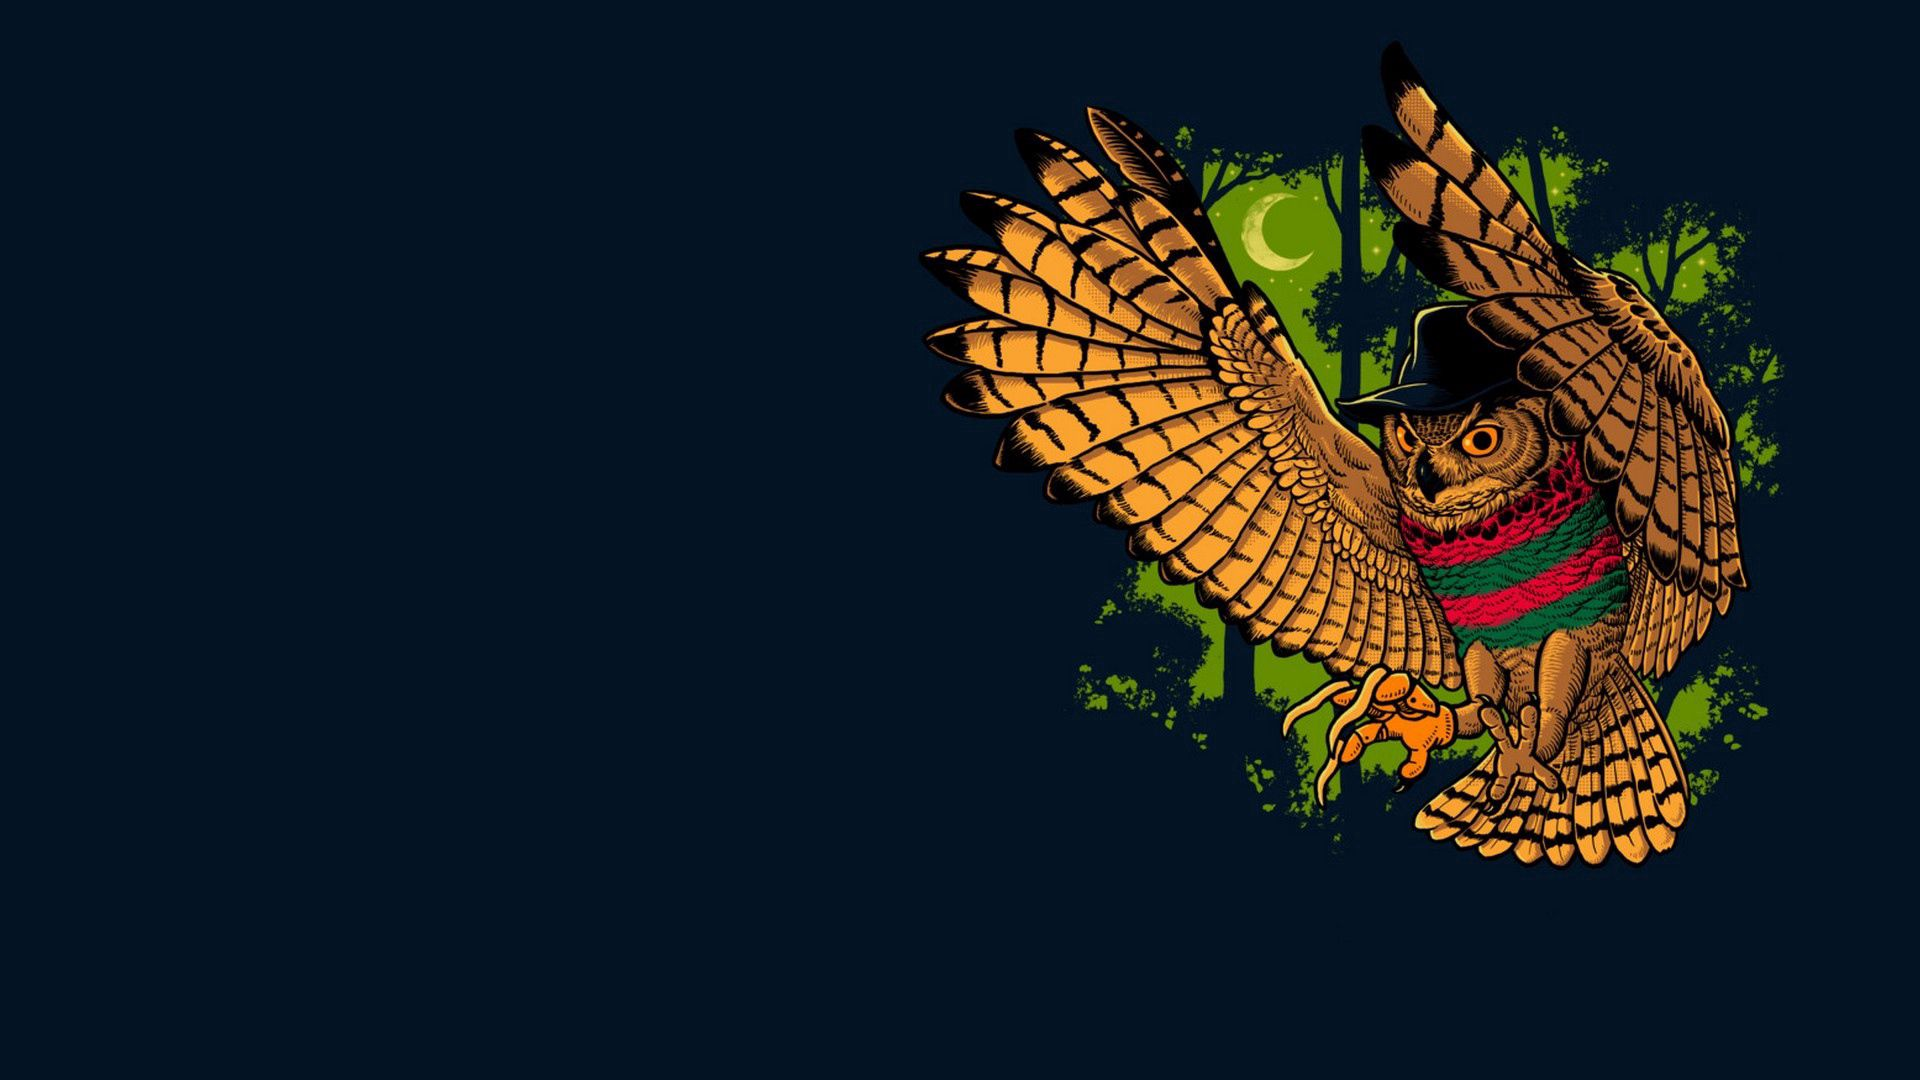 134872 Screensavers and Wallpapers Bird for phone. Download Owl, Freddy Krueger, Vector, Bird, Minimalism pictures for free